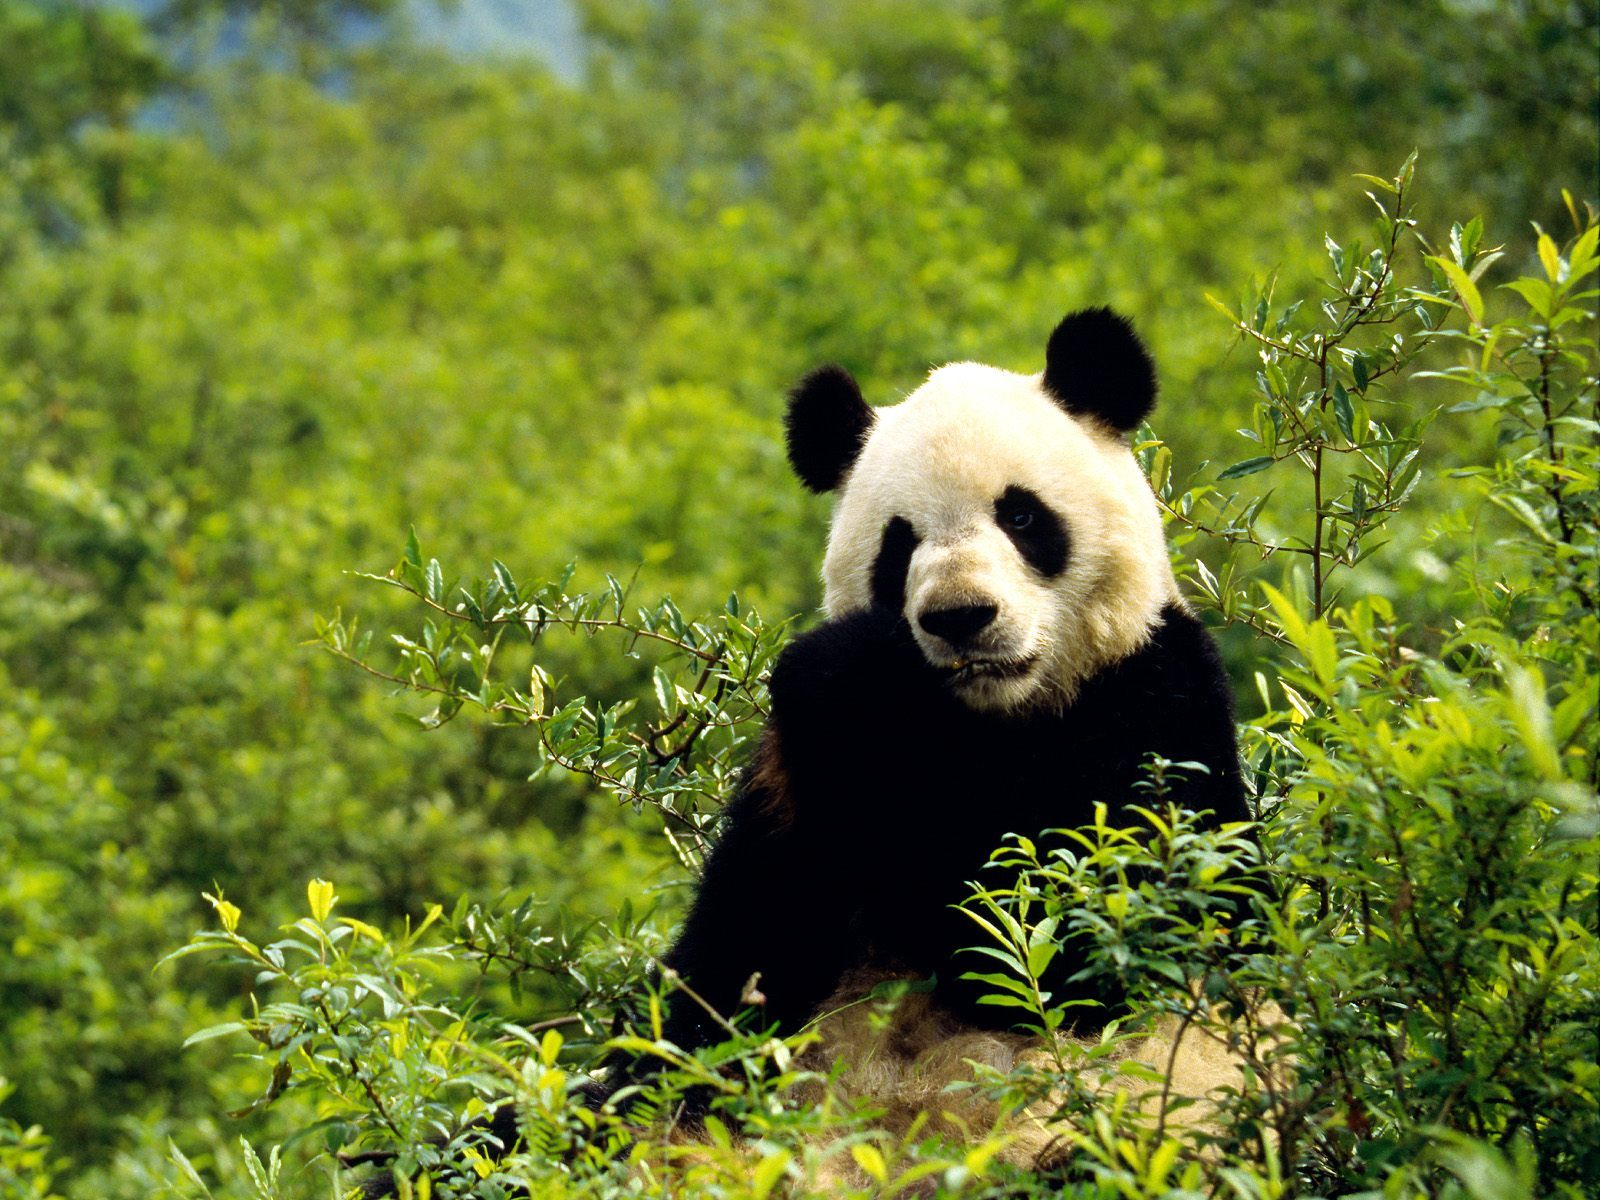 16334 download wallpaper Animals, Bears, Pandas screensavers and pictures for free